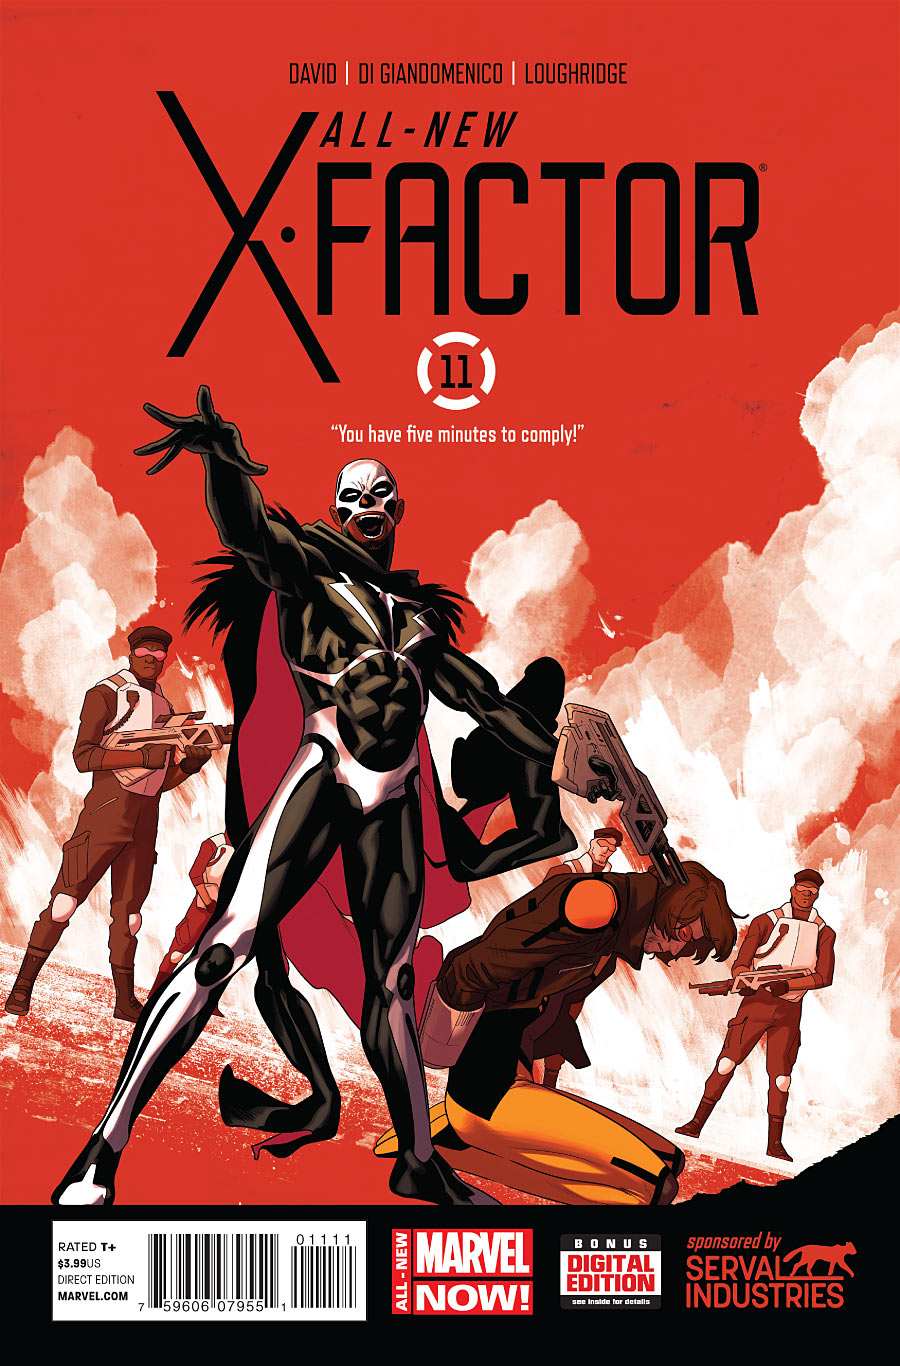 All-New X-Factor Vol 1 11